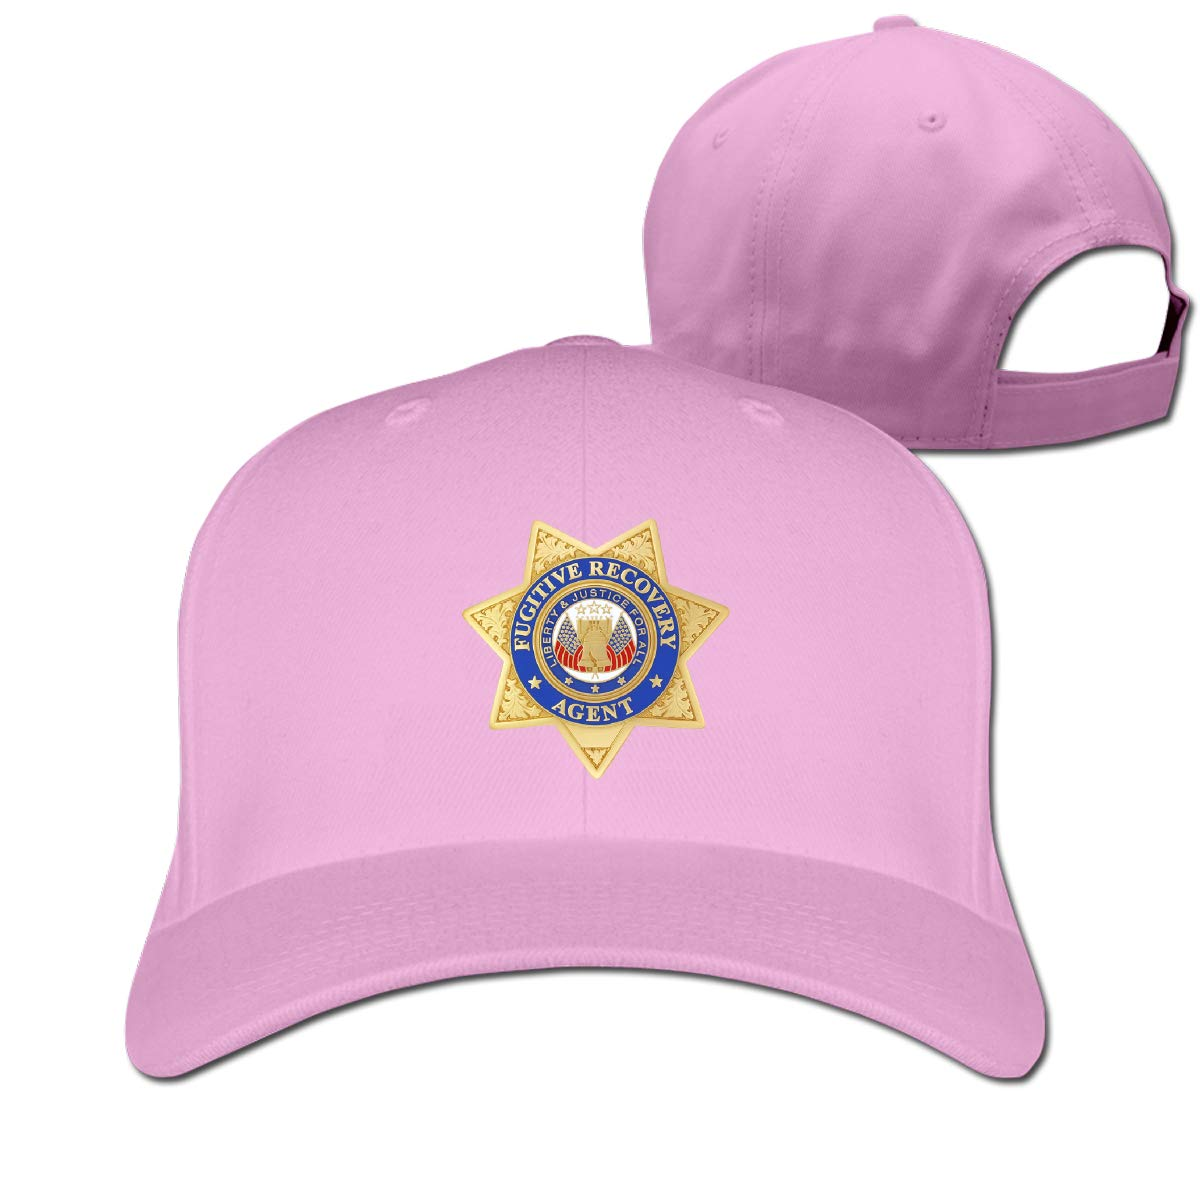 Fugitive Recovery Agent 100/% Cotton Baseball Caps Adjustable Dad Trucker Sun Hat Outdoor Custom Cap for Men Women